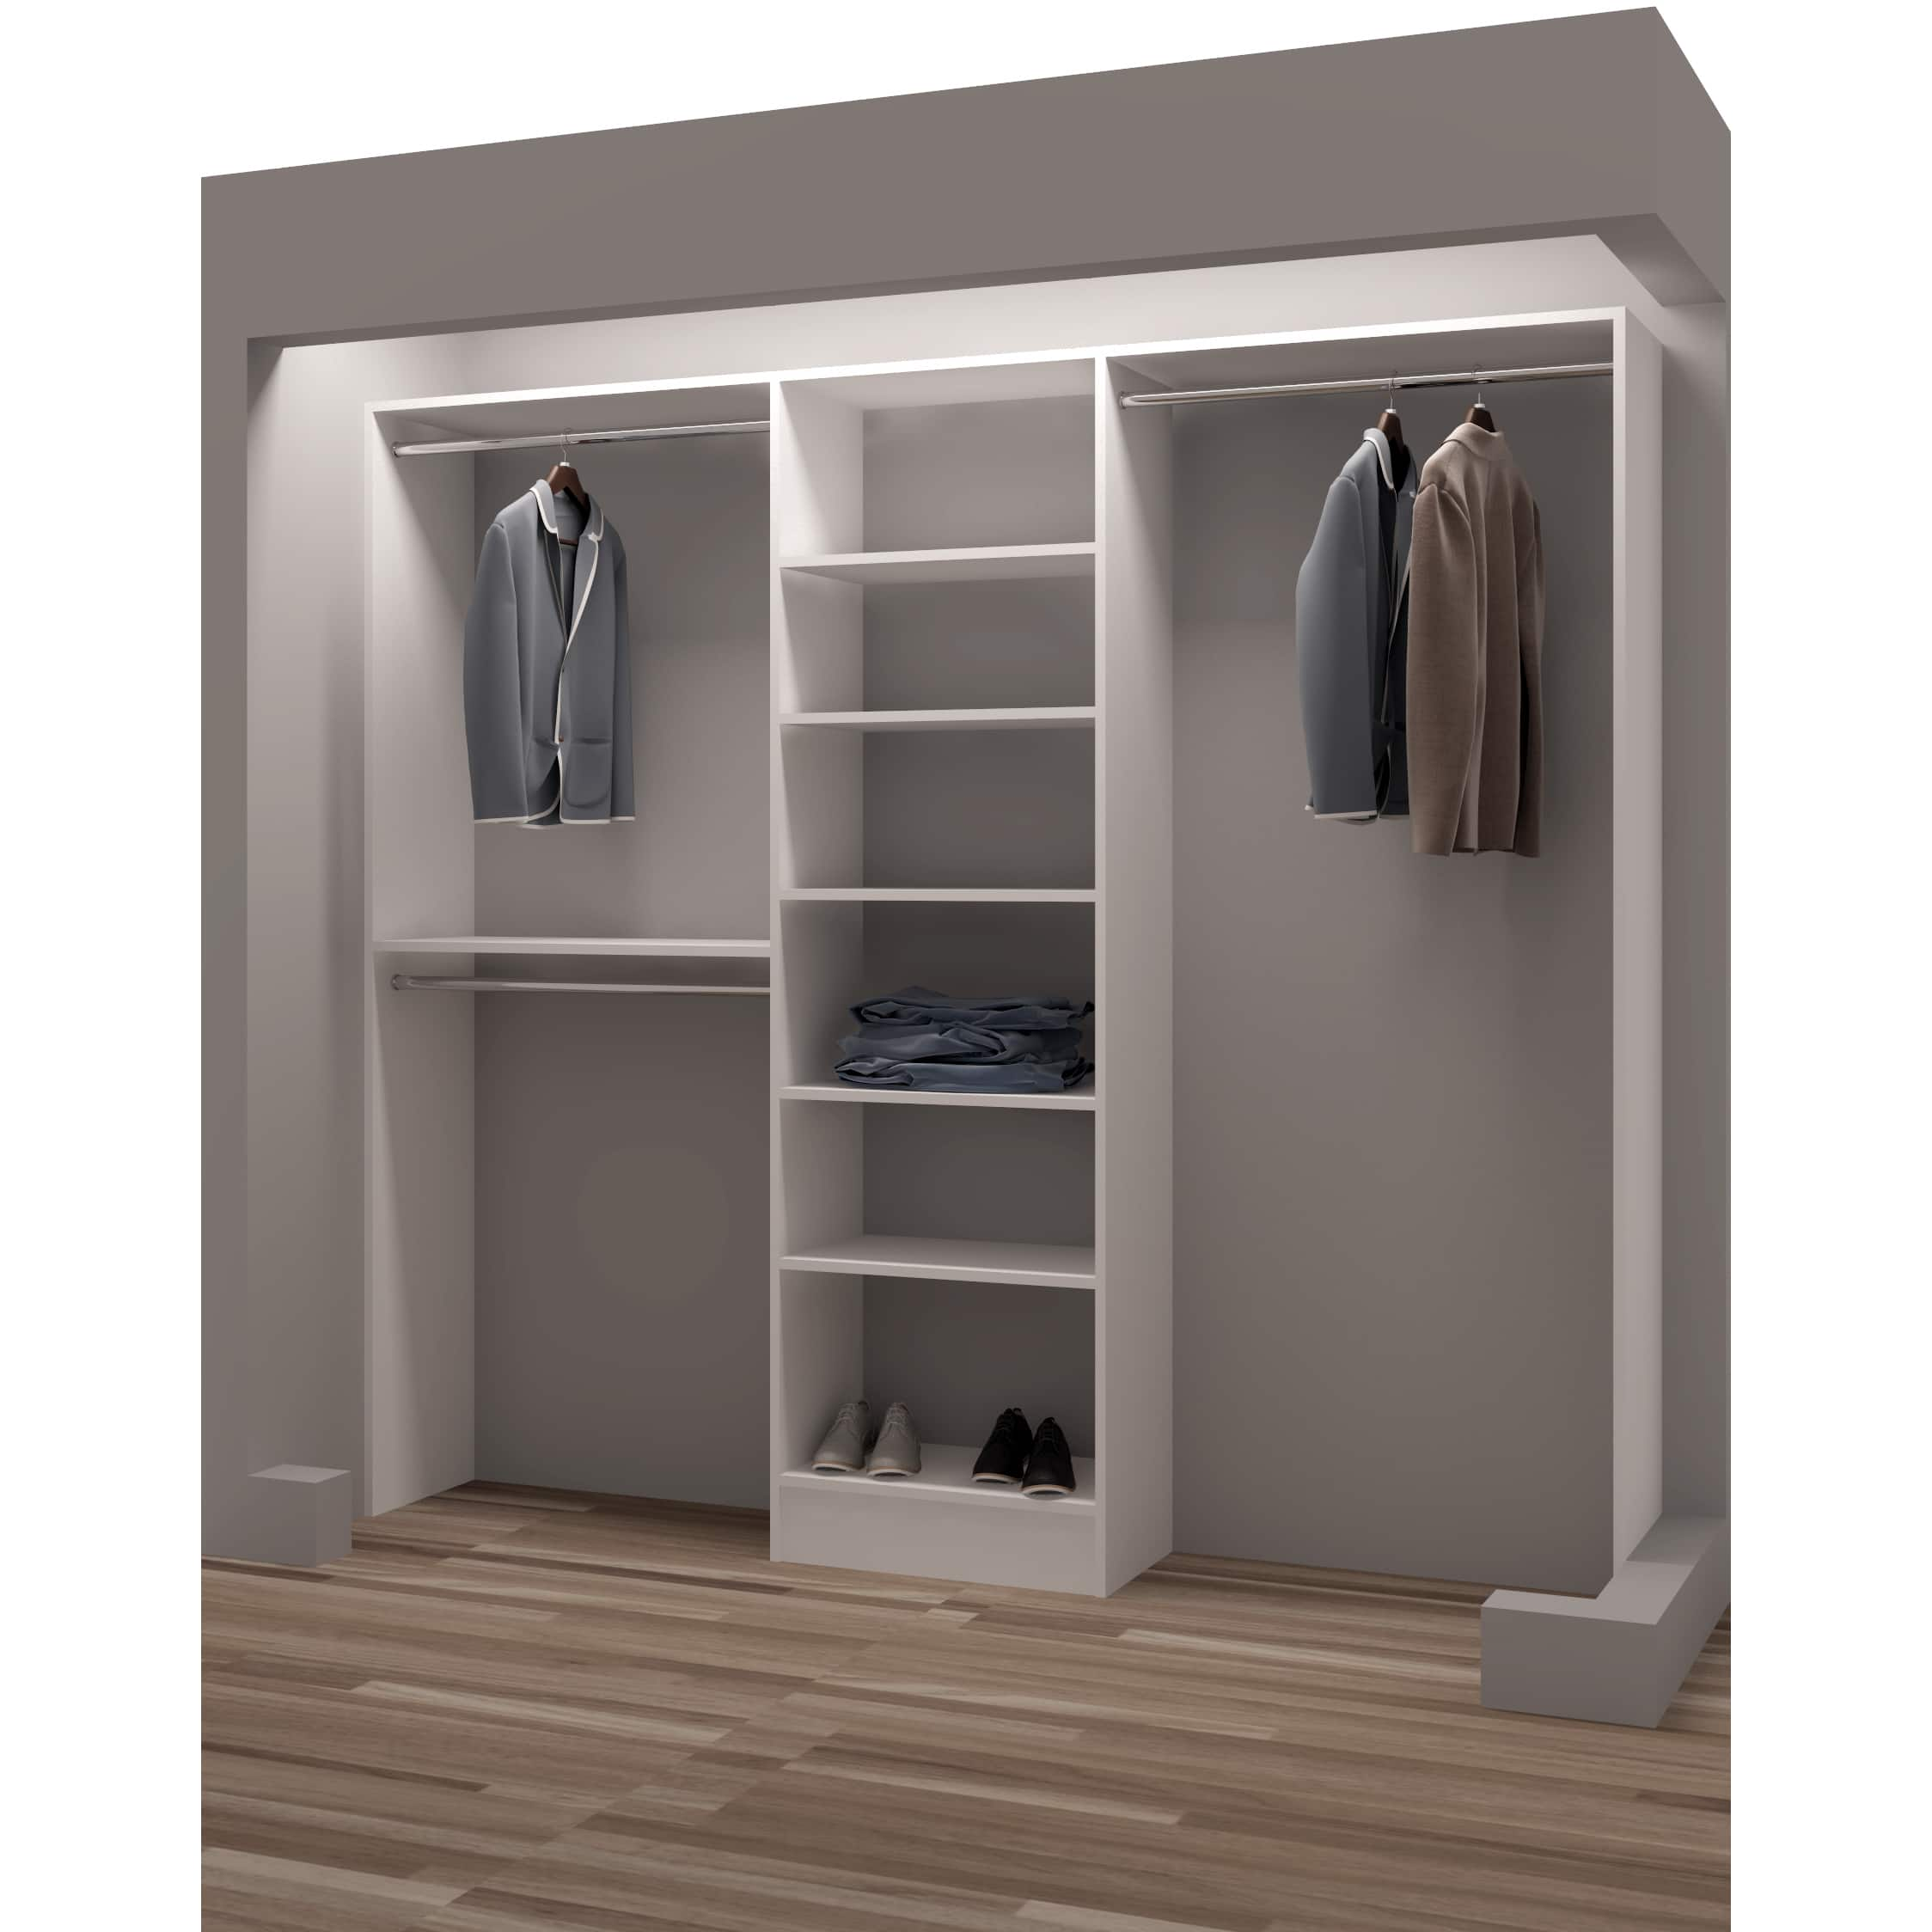 Do It Yourself Home Design: Buy Closet Organizers & Systems Online At Overstock.com